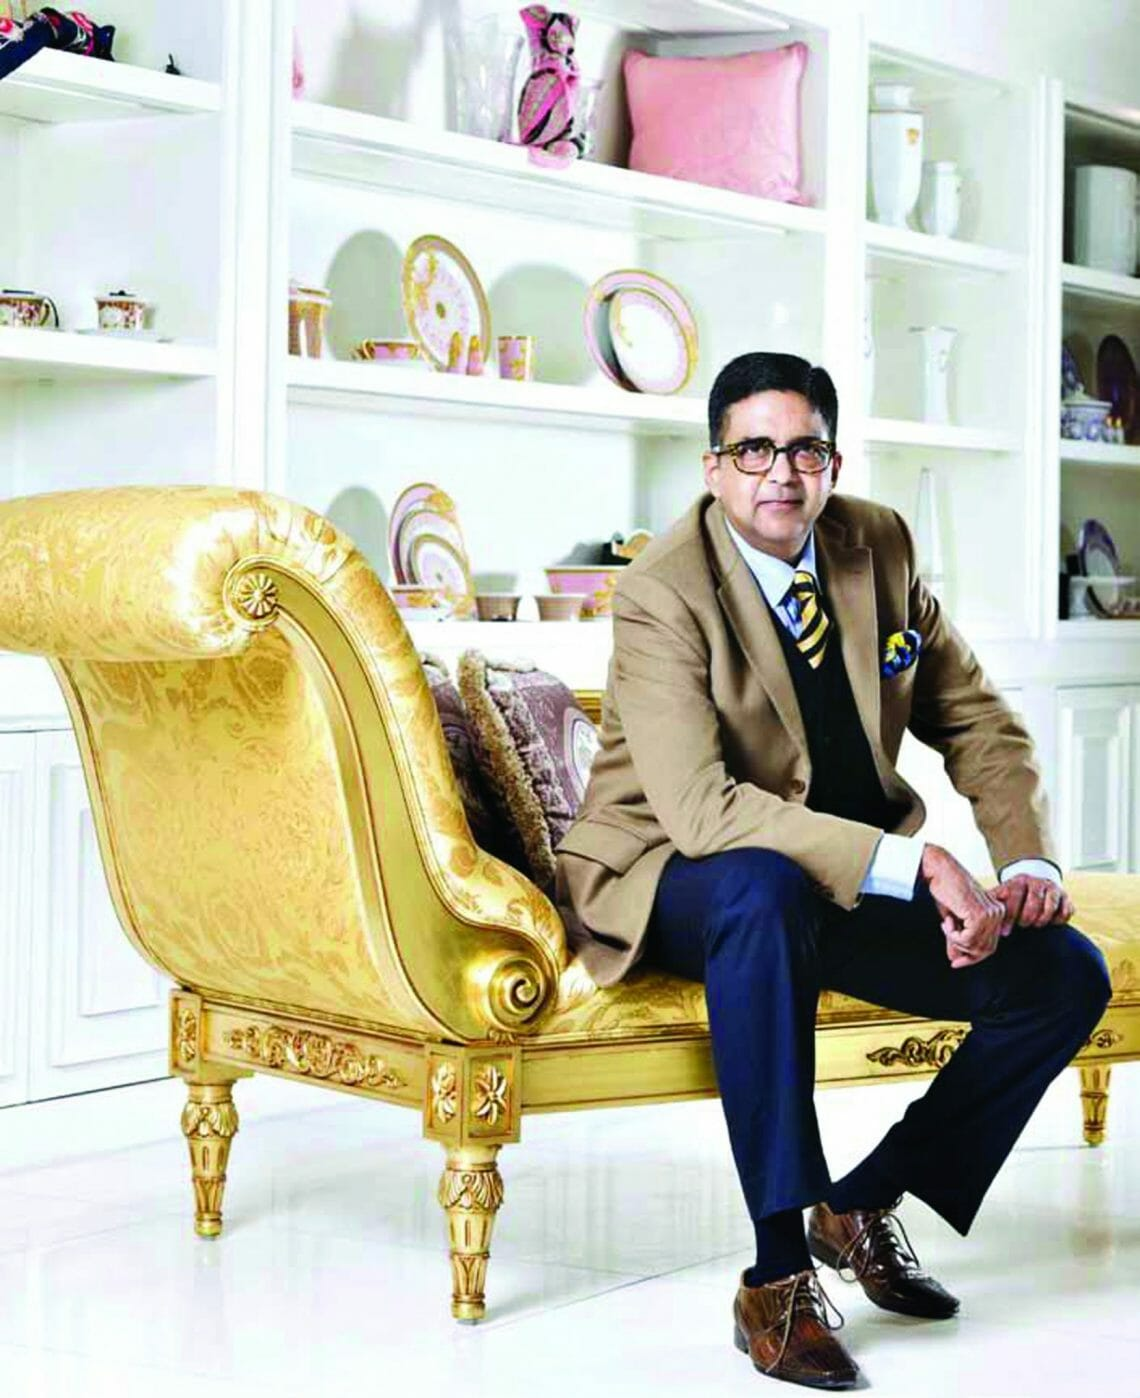 abhay sir 1 Meet our Luxury Awards Judges: Abhay Gupta, CEO of Luxury Connect & Luxury Connect Business School - EAT LOVE SAVOR International luxury lifestyle magazine and bookazines